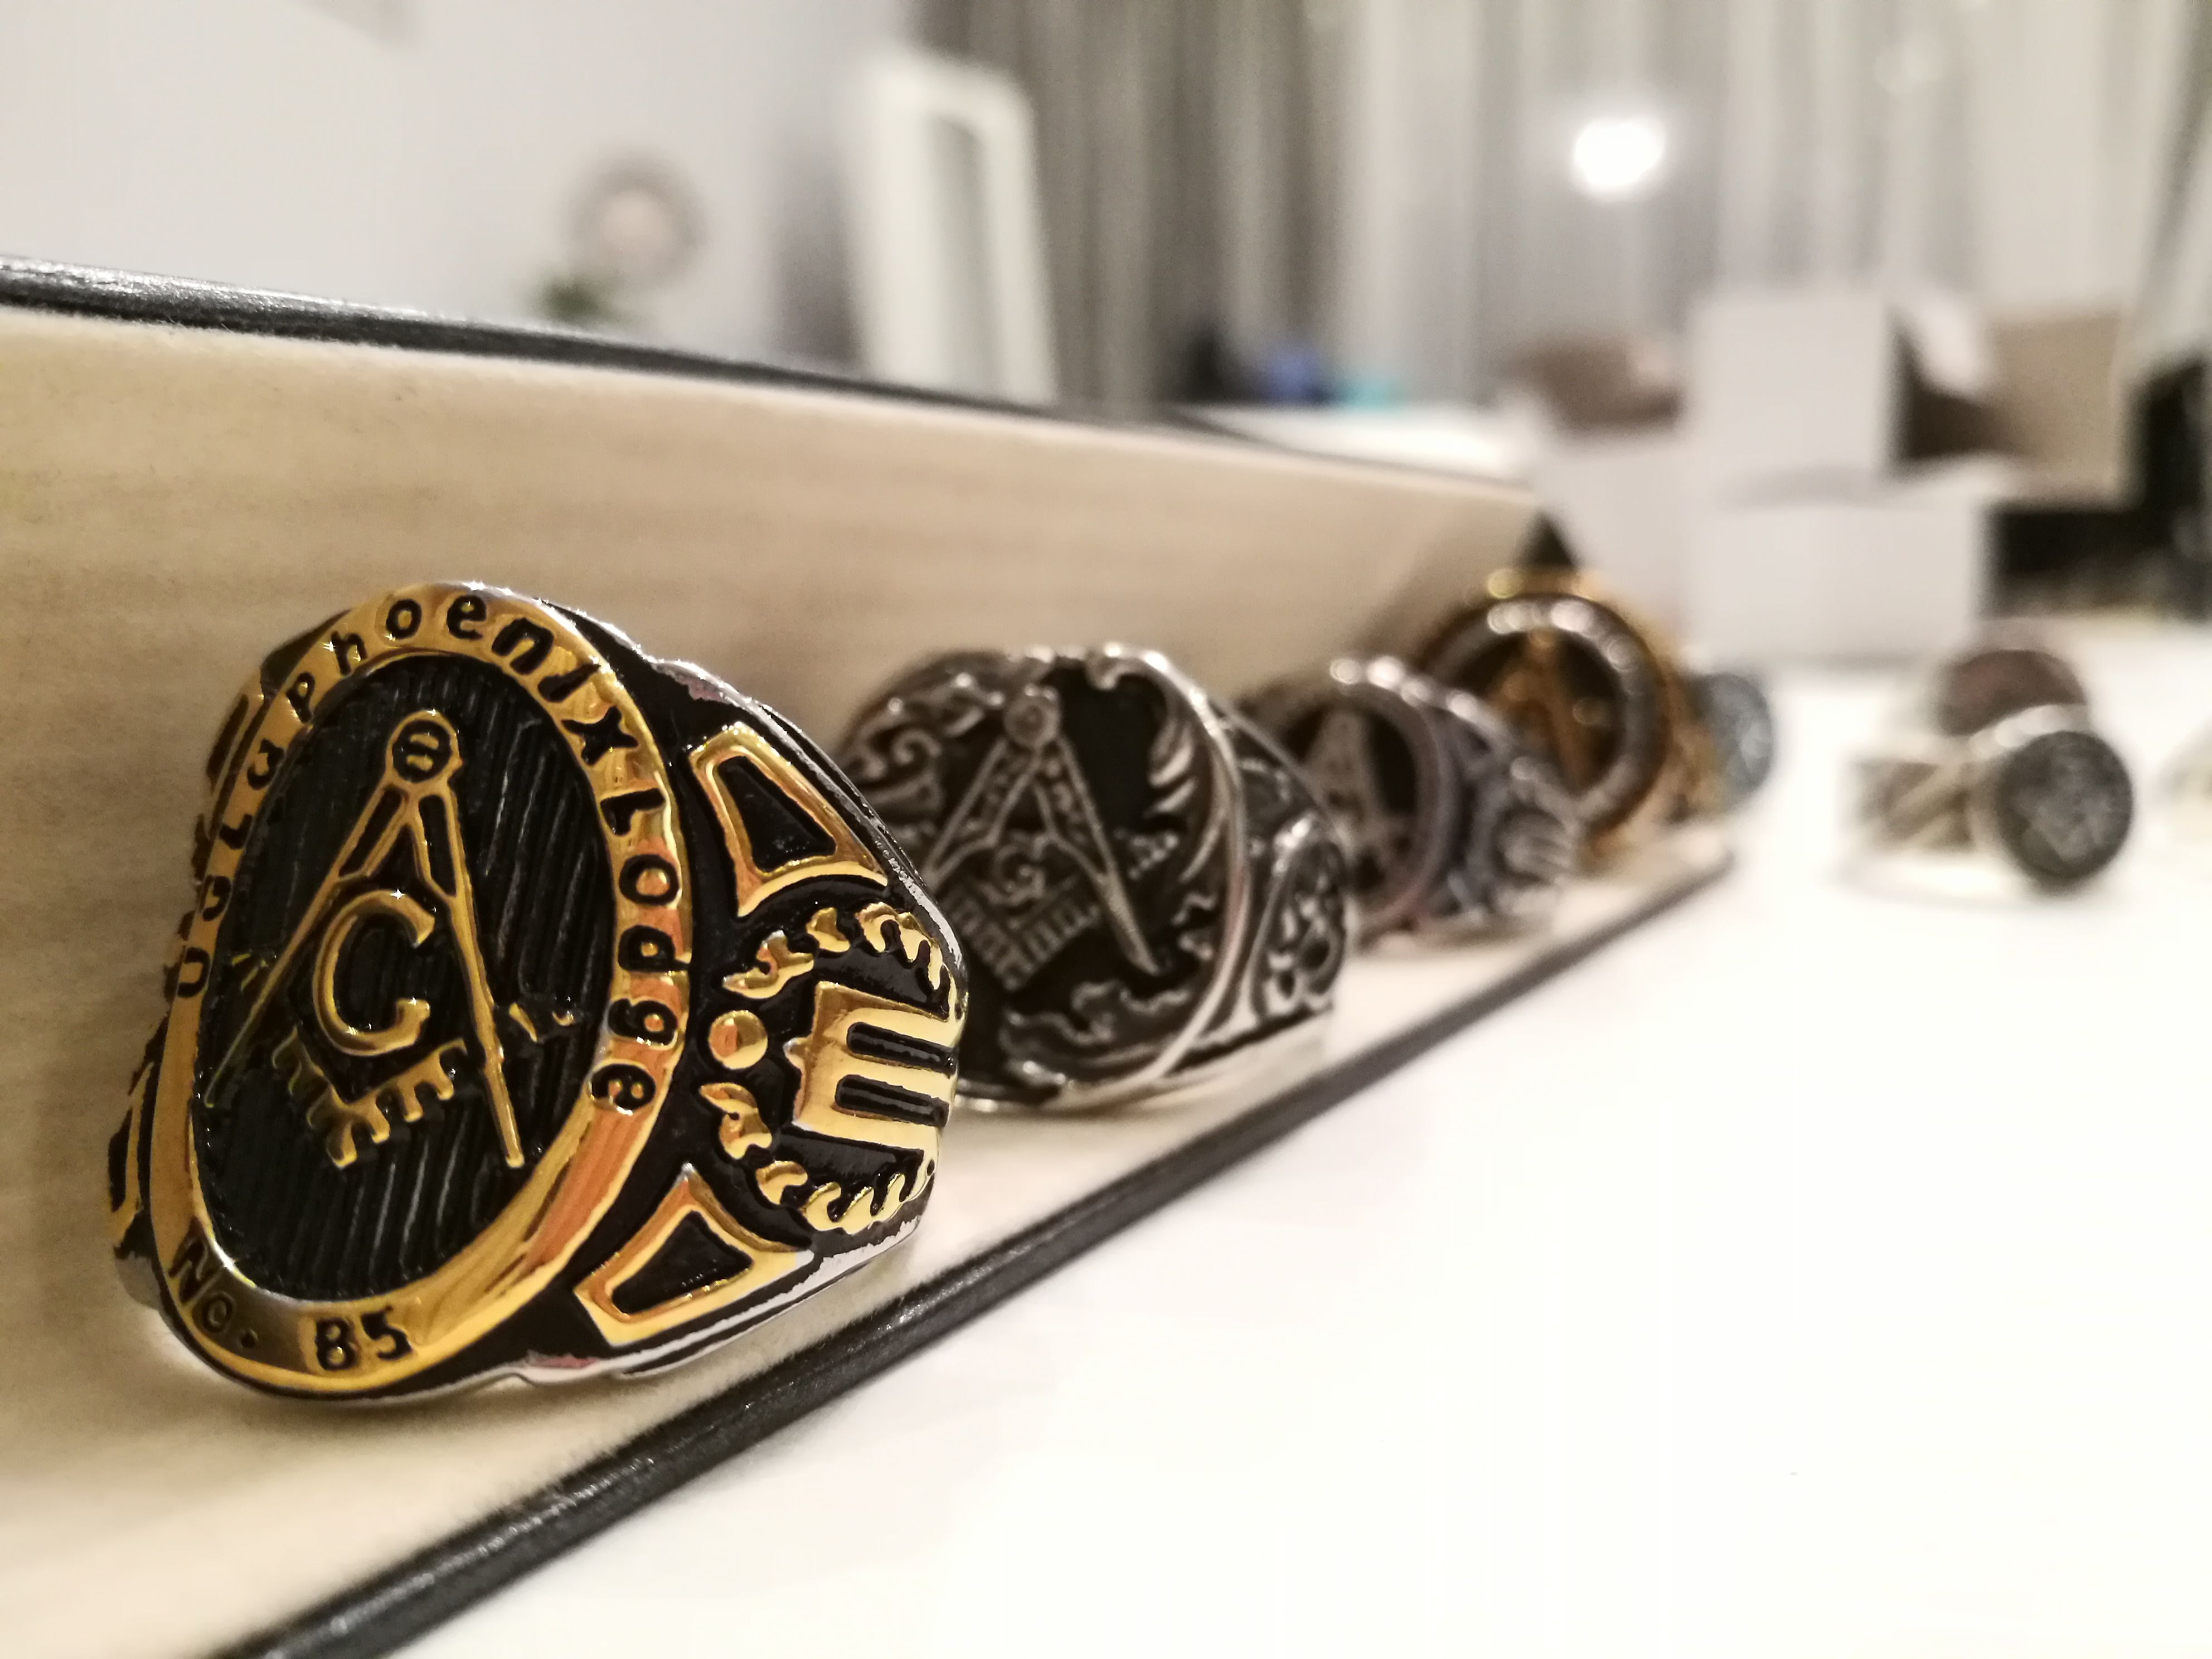 A collection of masonic rings with symbols of the blue lodge of a collection of masonic rings with symbols of the blue lodge of freemasonry the square biocorpaavc Images